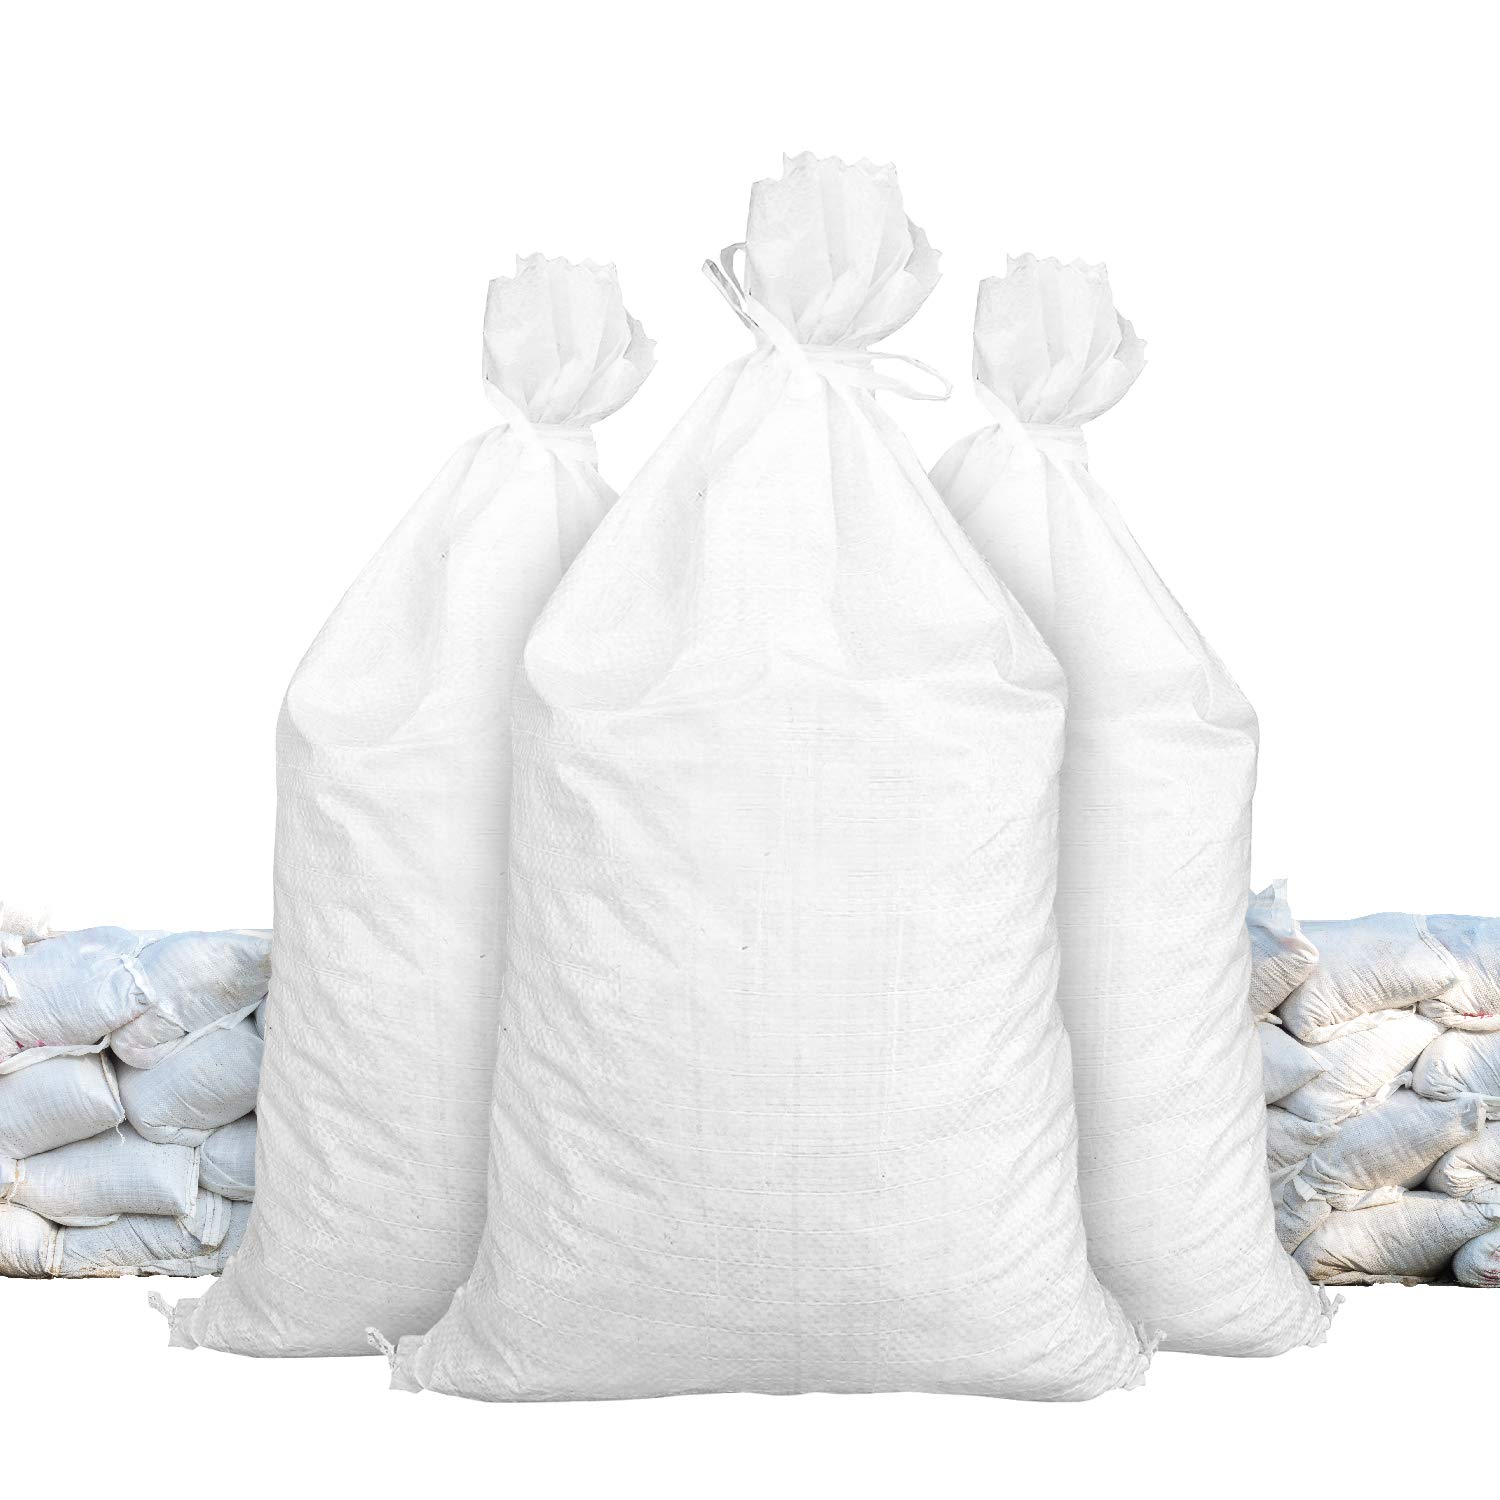 """Sandbags for Flooding - Size: 18"""" x 30"""" - Color: White - Sand Bag - Flood Water Barrier - Water Curb - Tent Sandbags - Store Bags by Sandbaggy (1000 Bags)"""